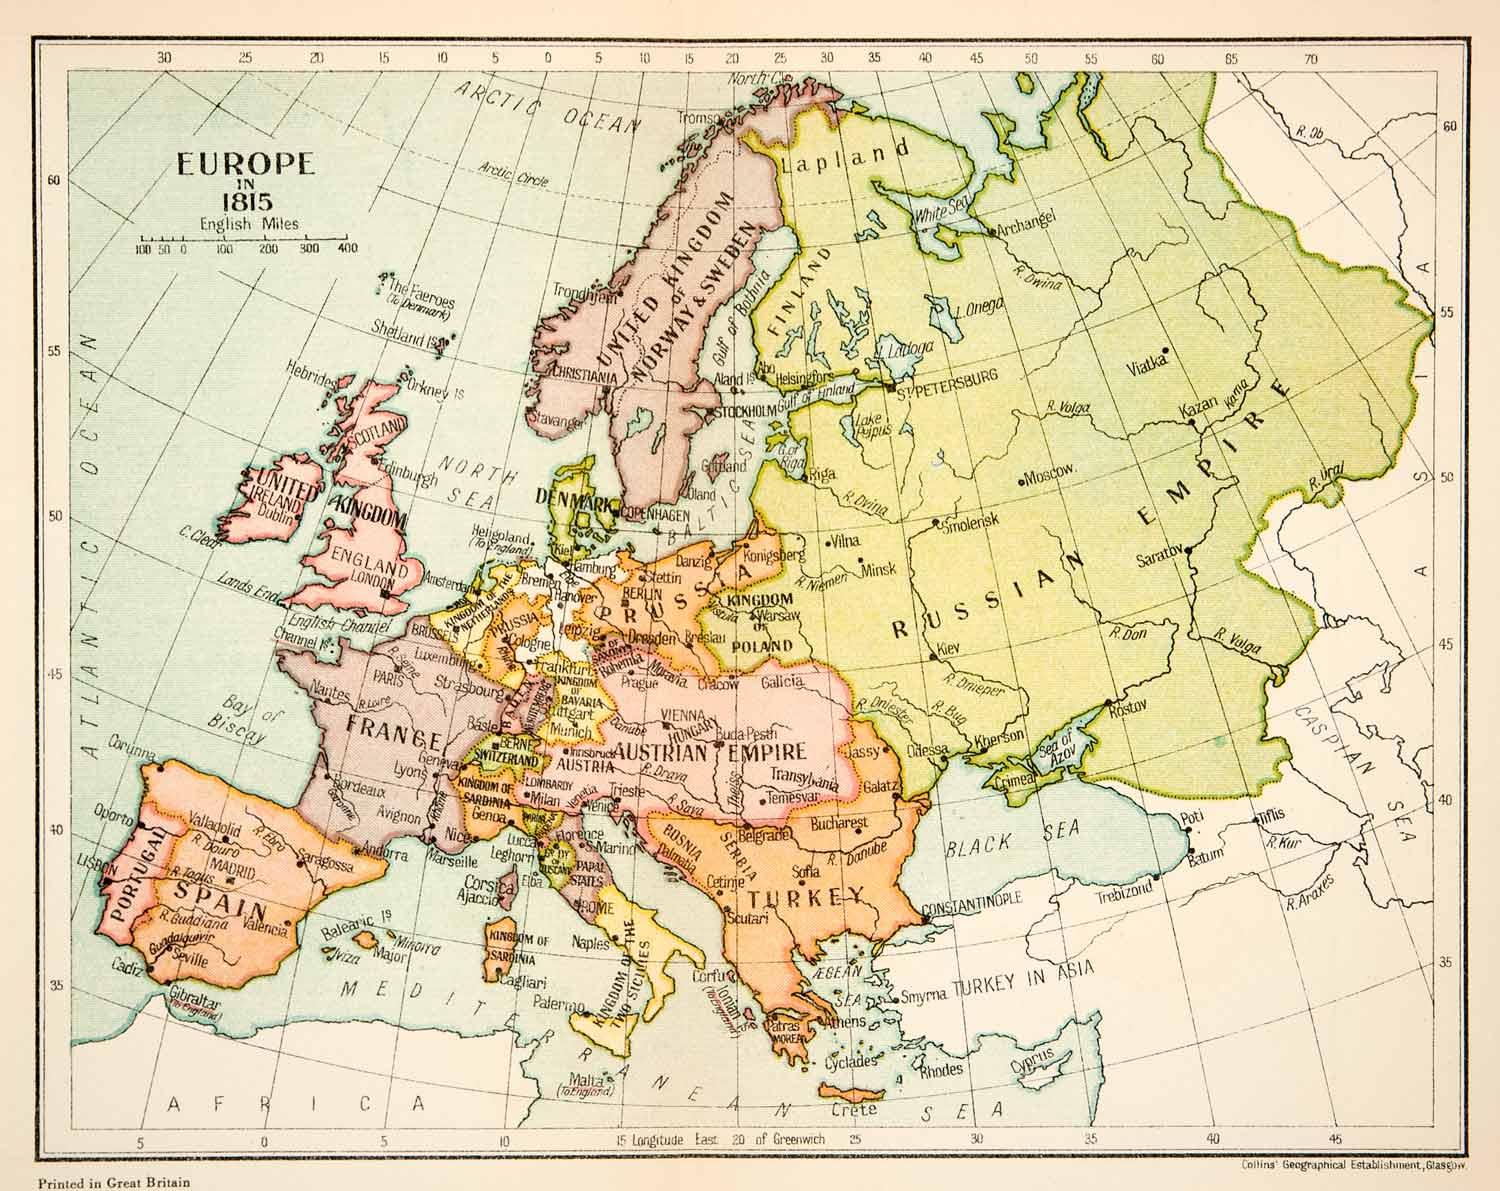 Map Of Spain Portugal And France.1926 Lithograph Map Europe 1815 Russian Empire France Turkey Spain